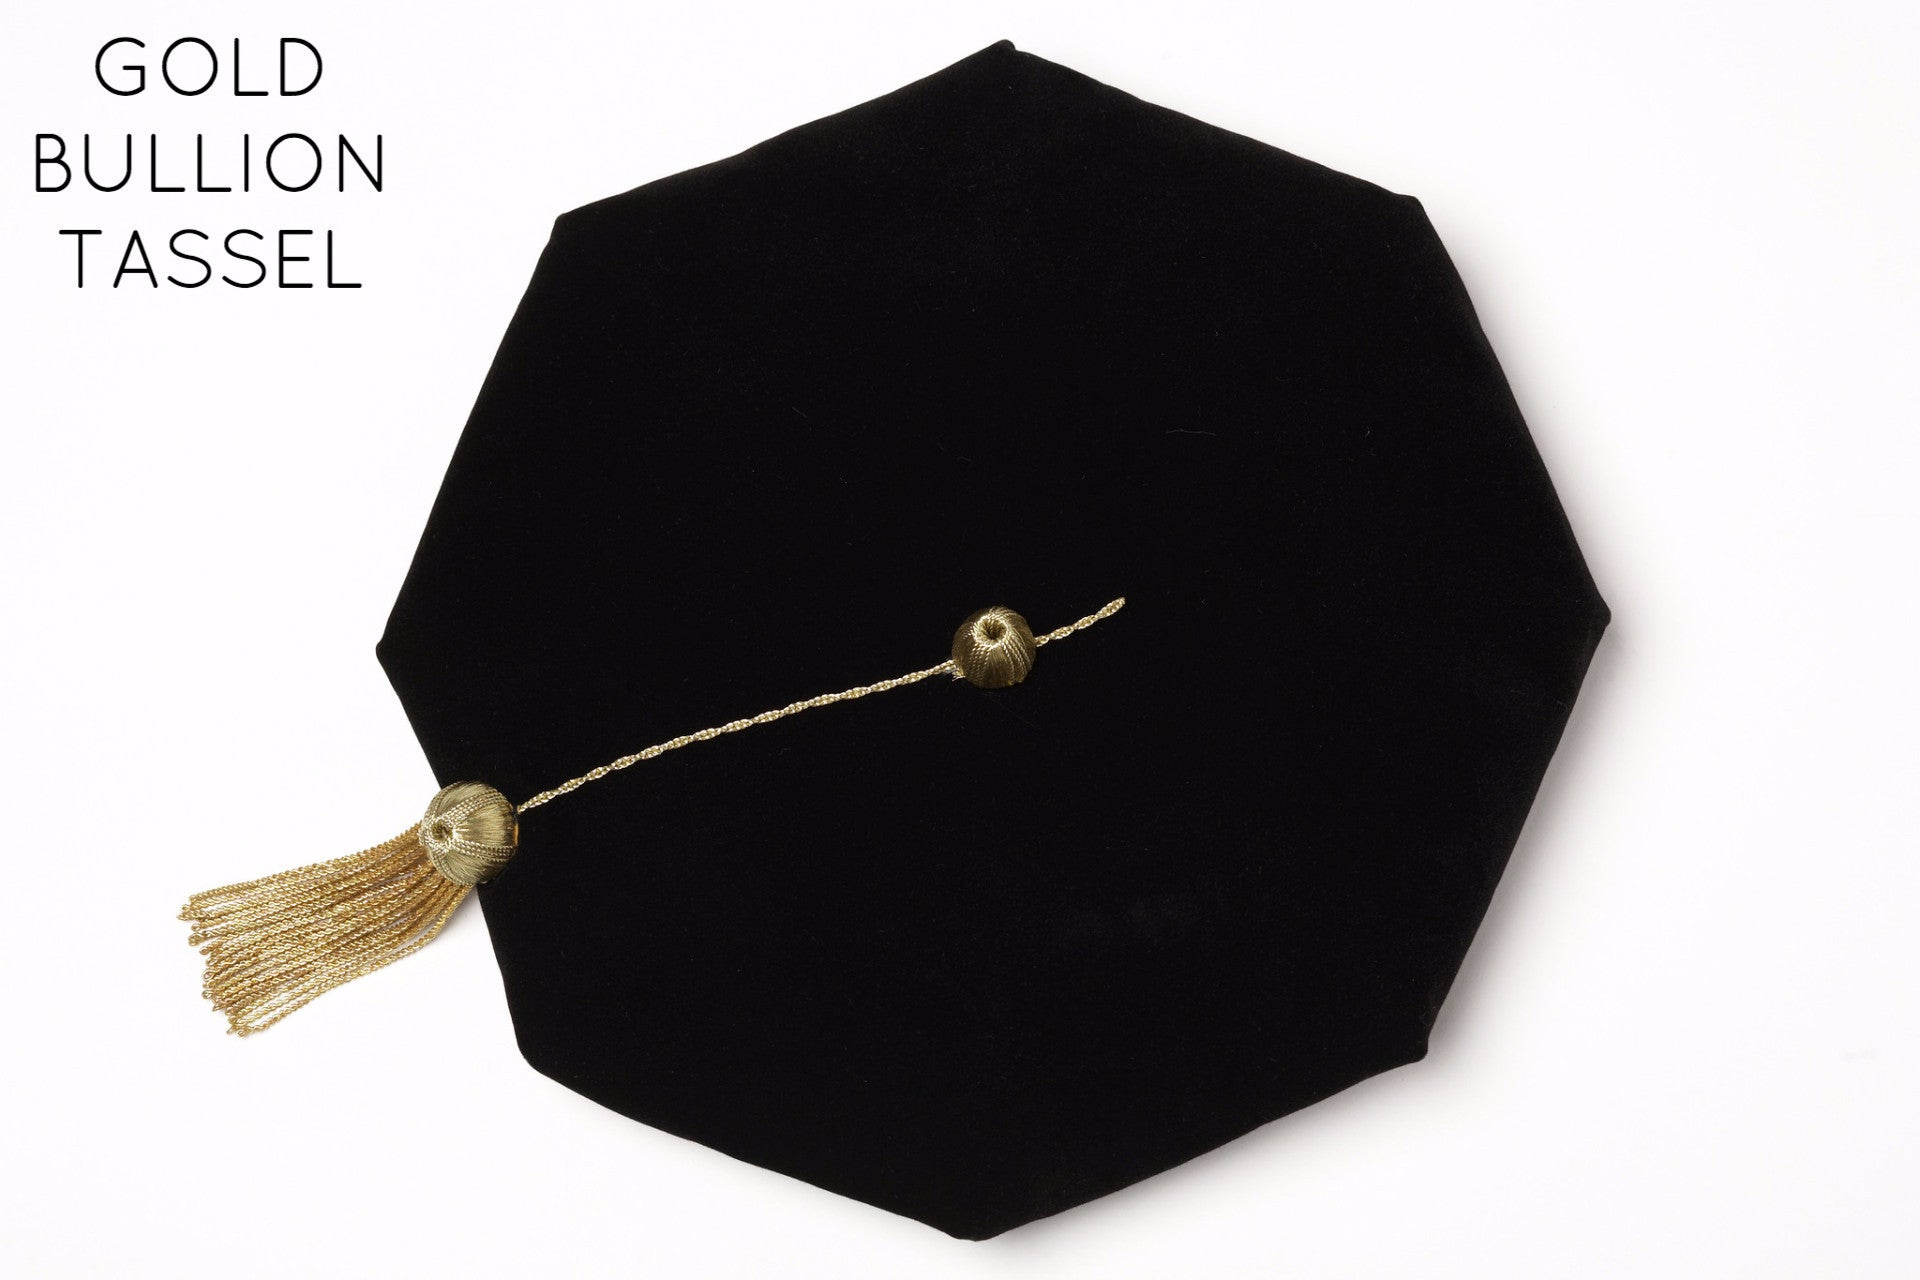 Stanford Complete Doctoral Regalia Rental - Velvet Cap with Gold Bullion Tassel